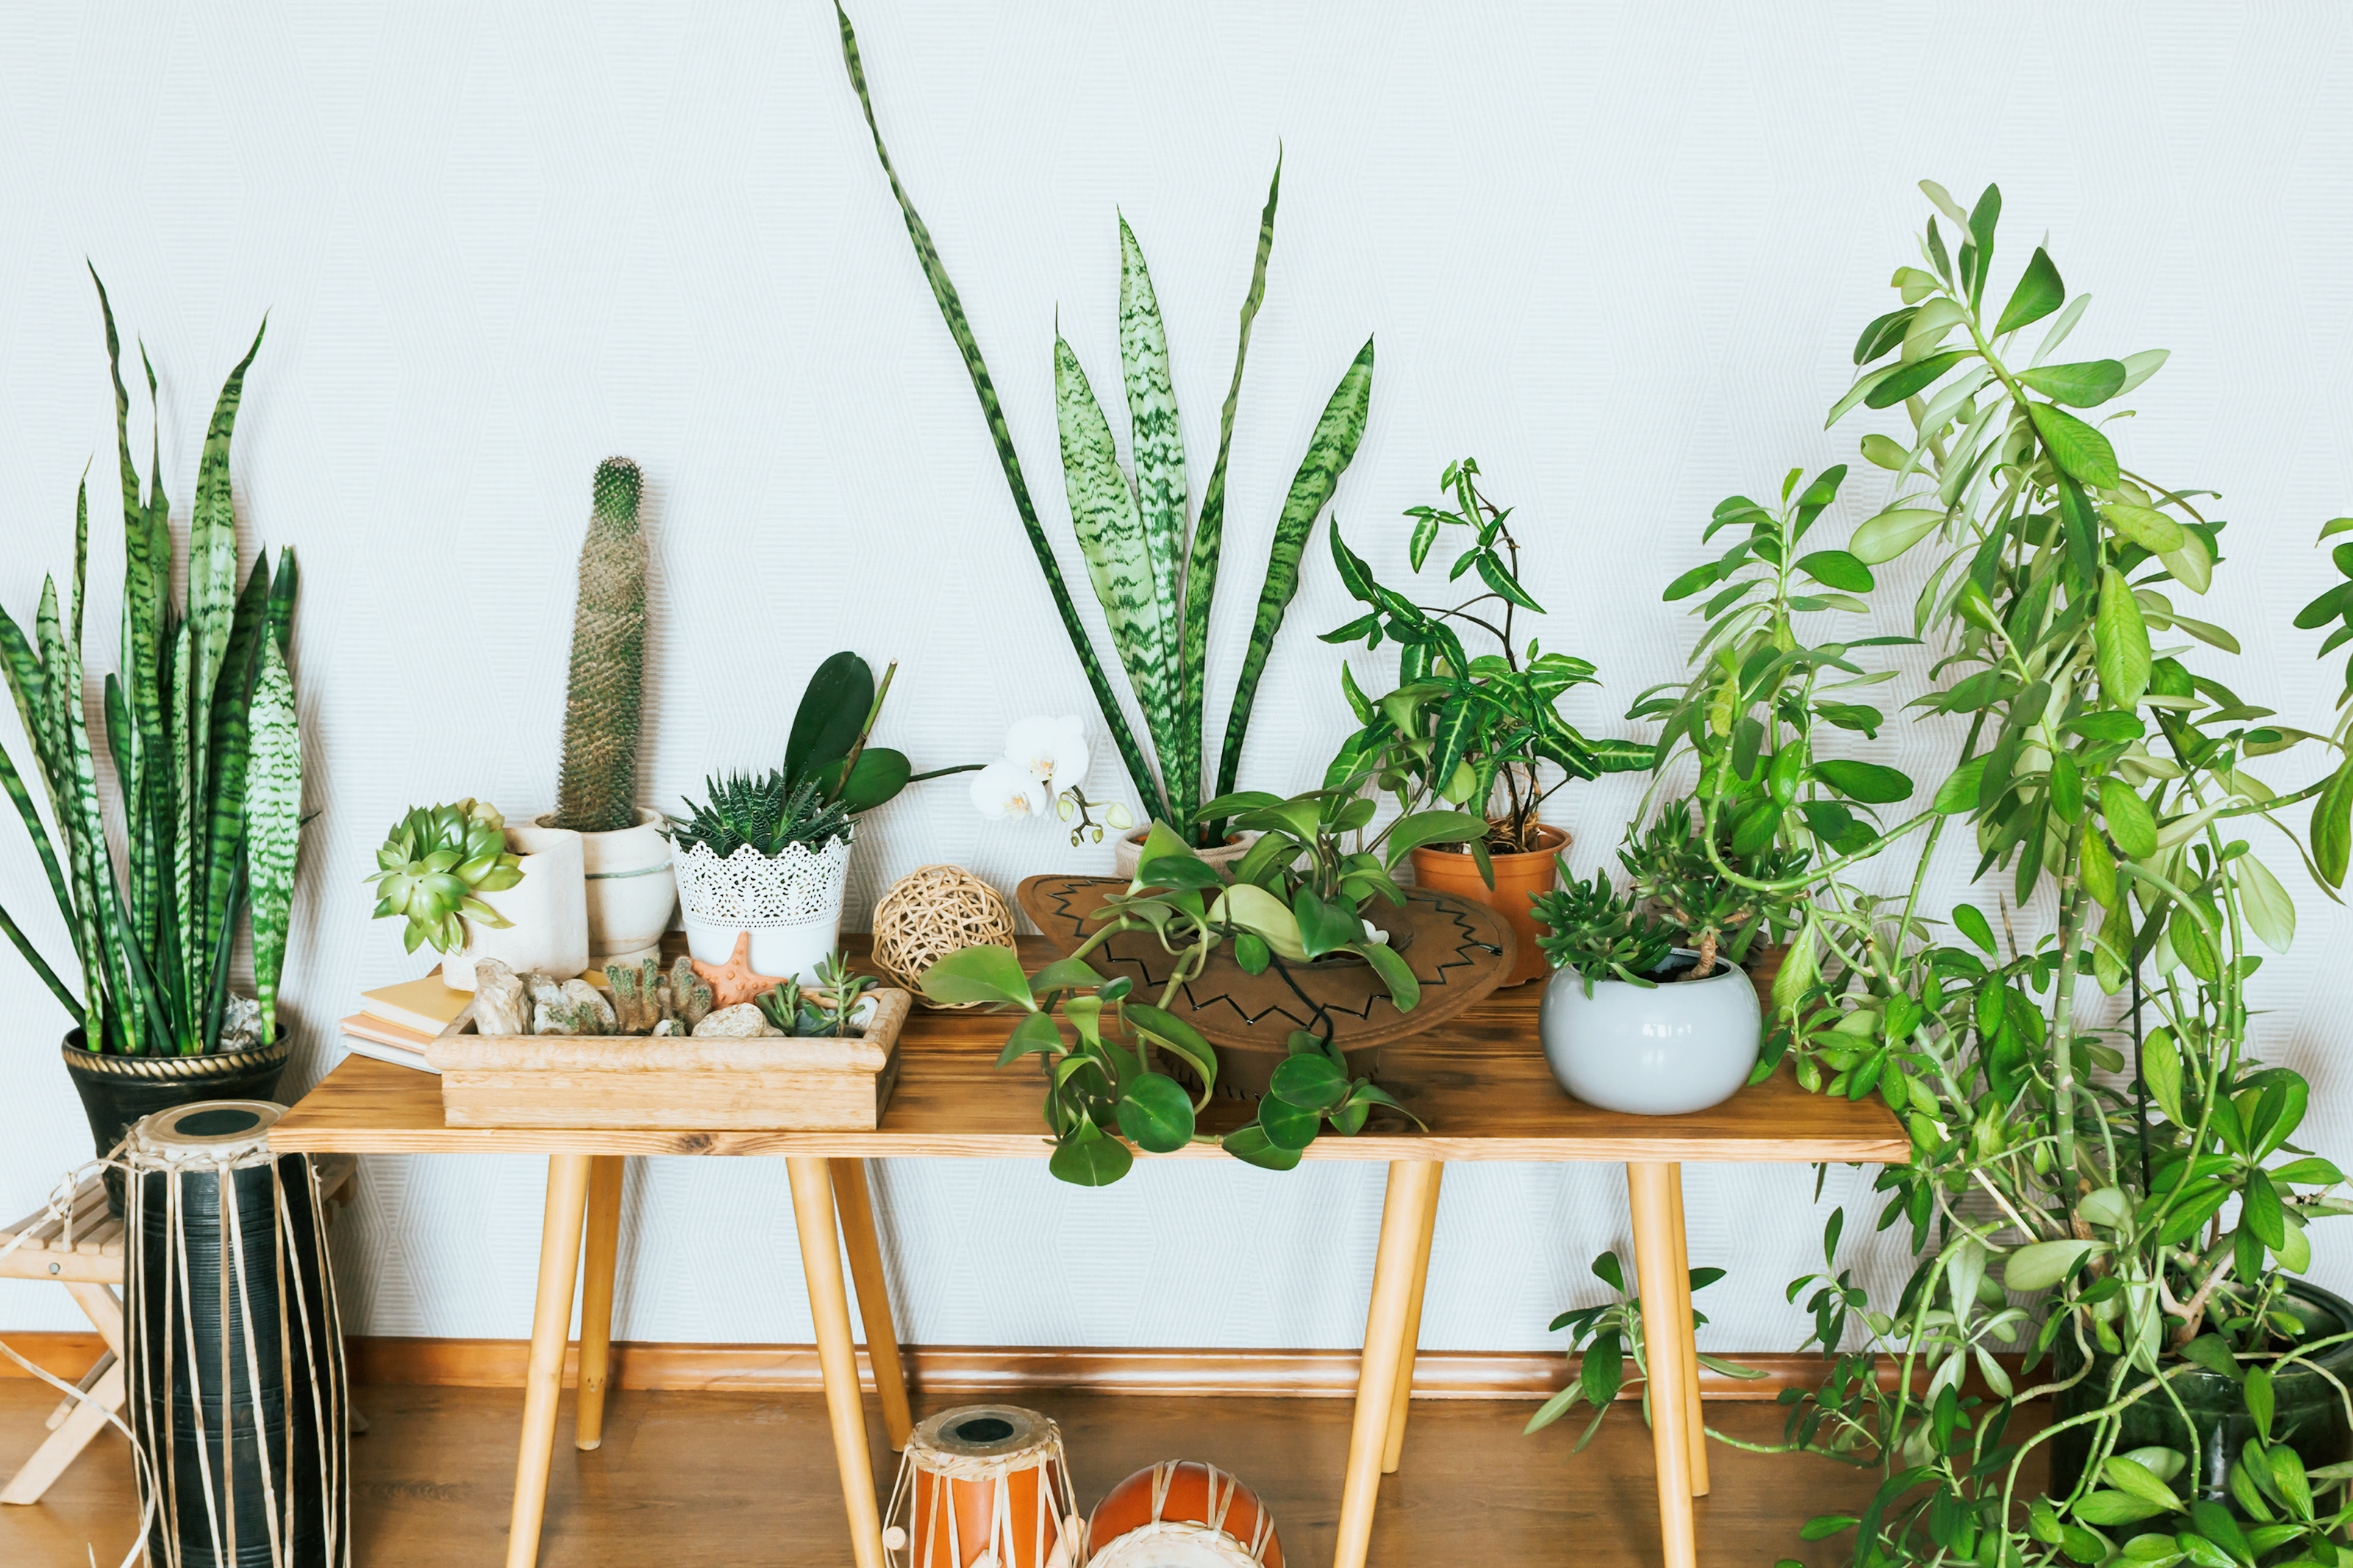 5 Low Maintenance Plants Perfect for your Apartment